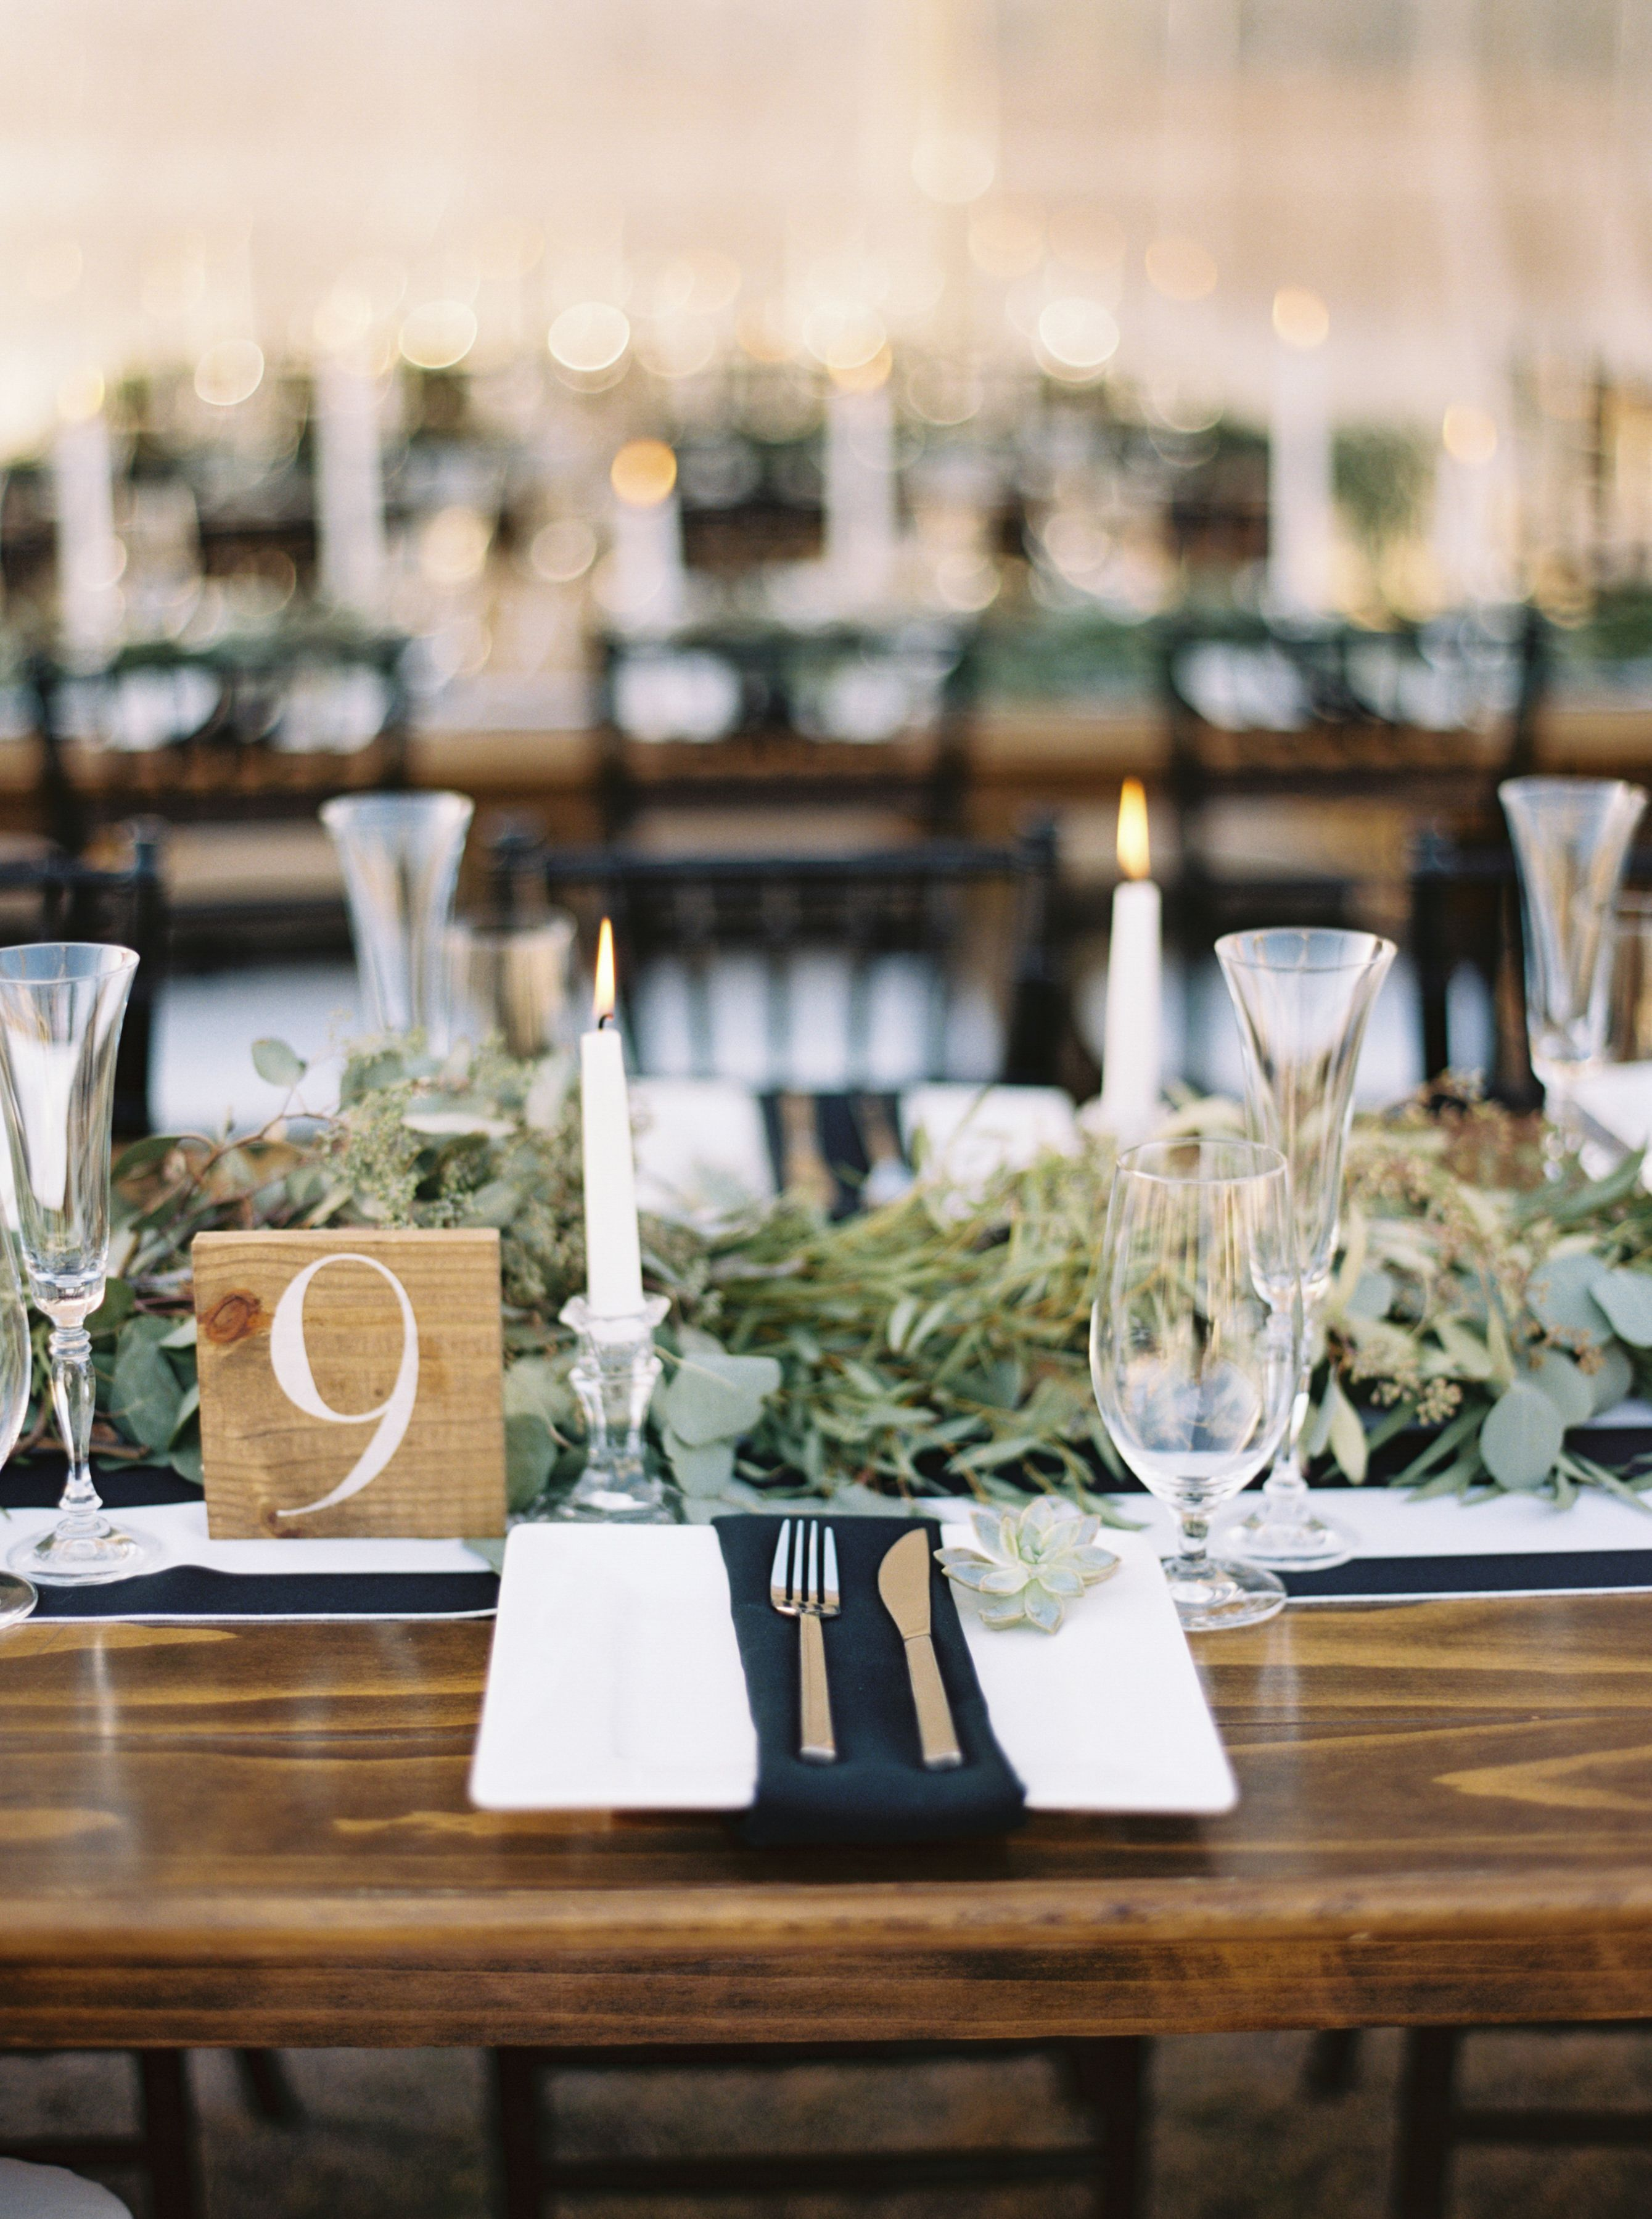 At the reception in Bakersfield, California, each long